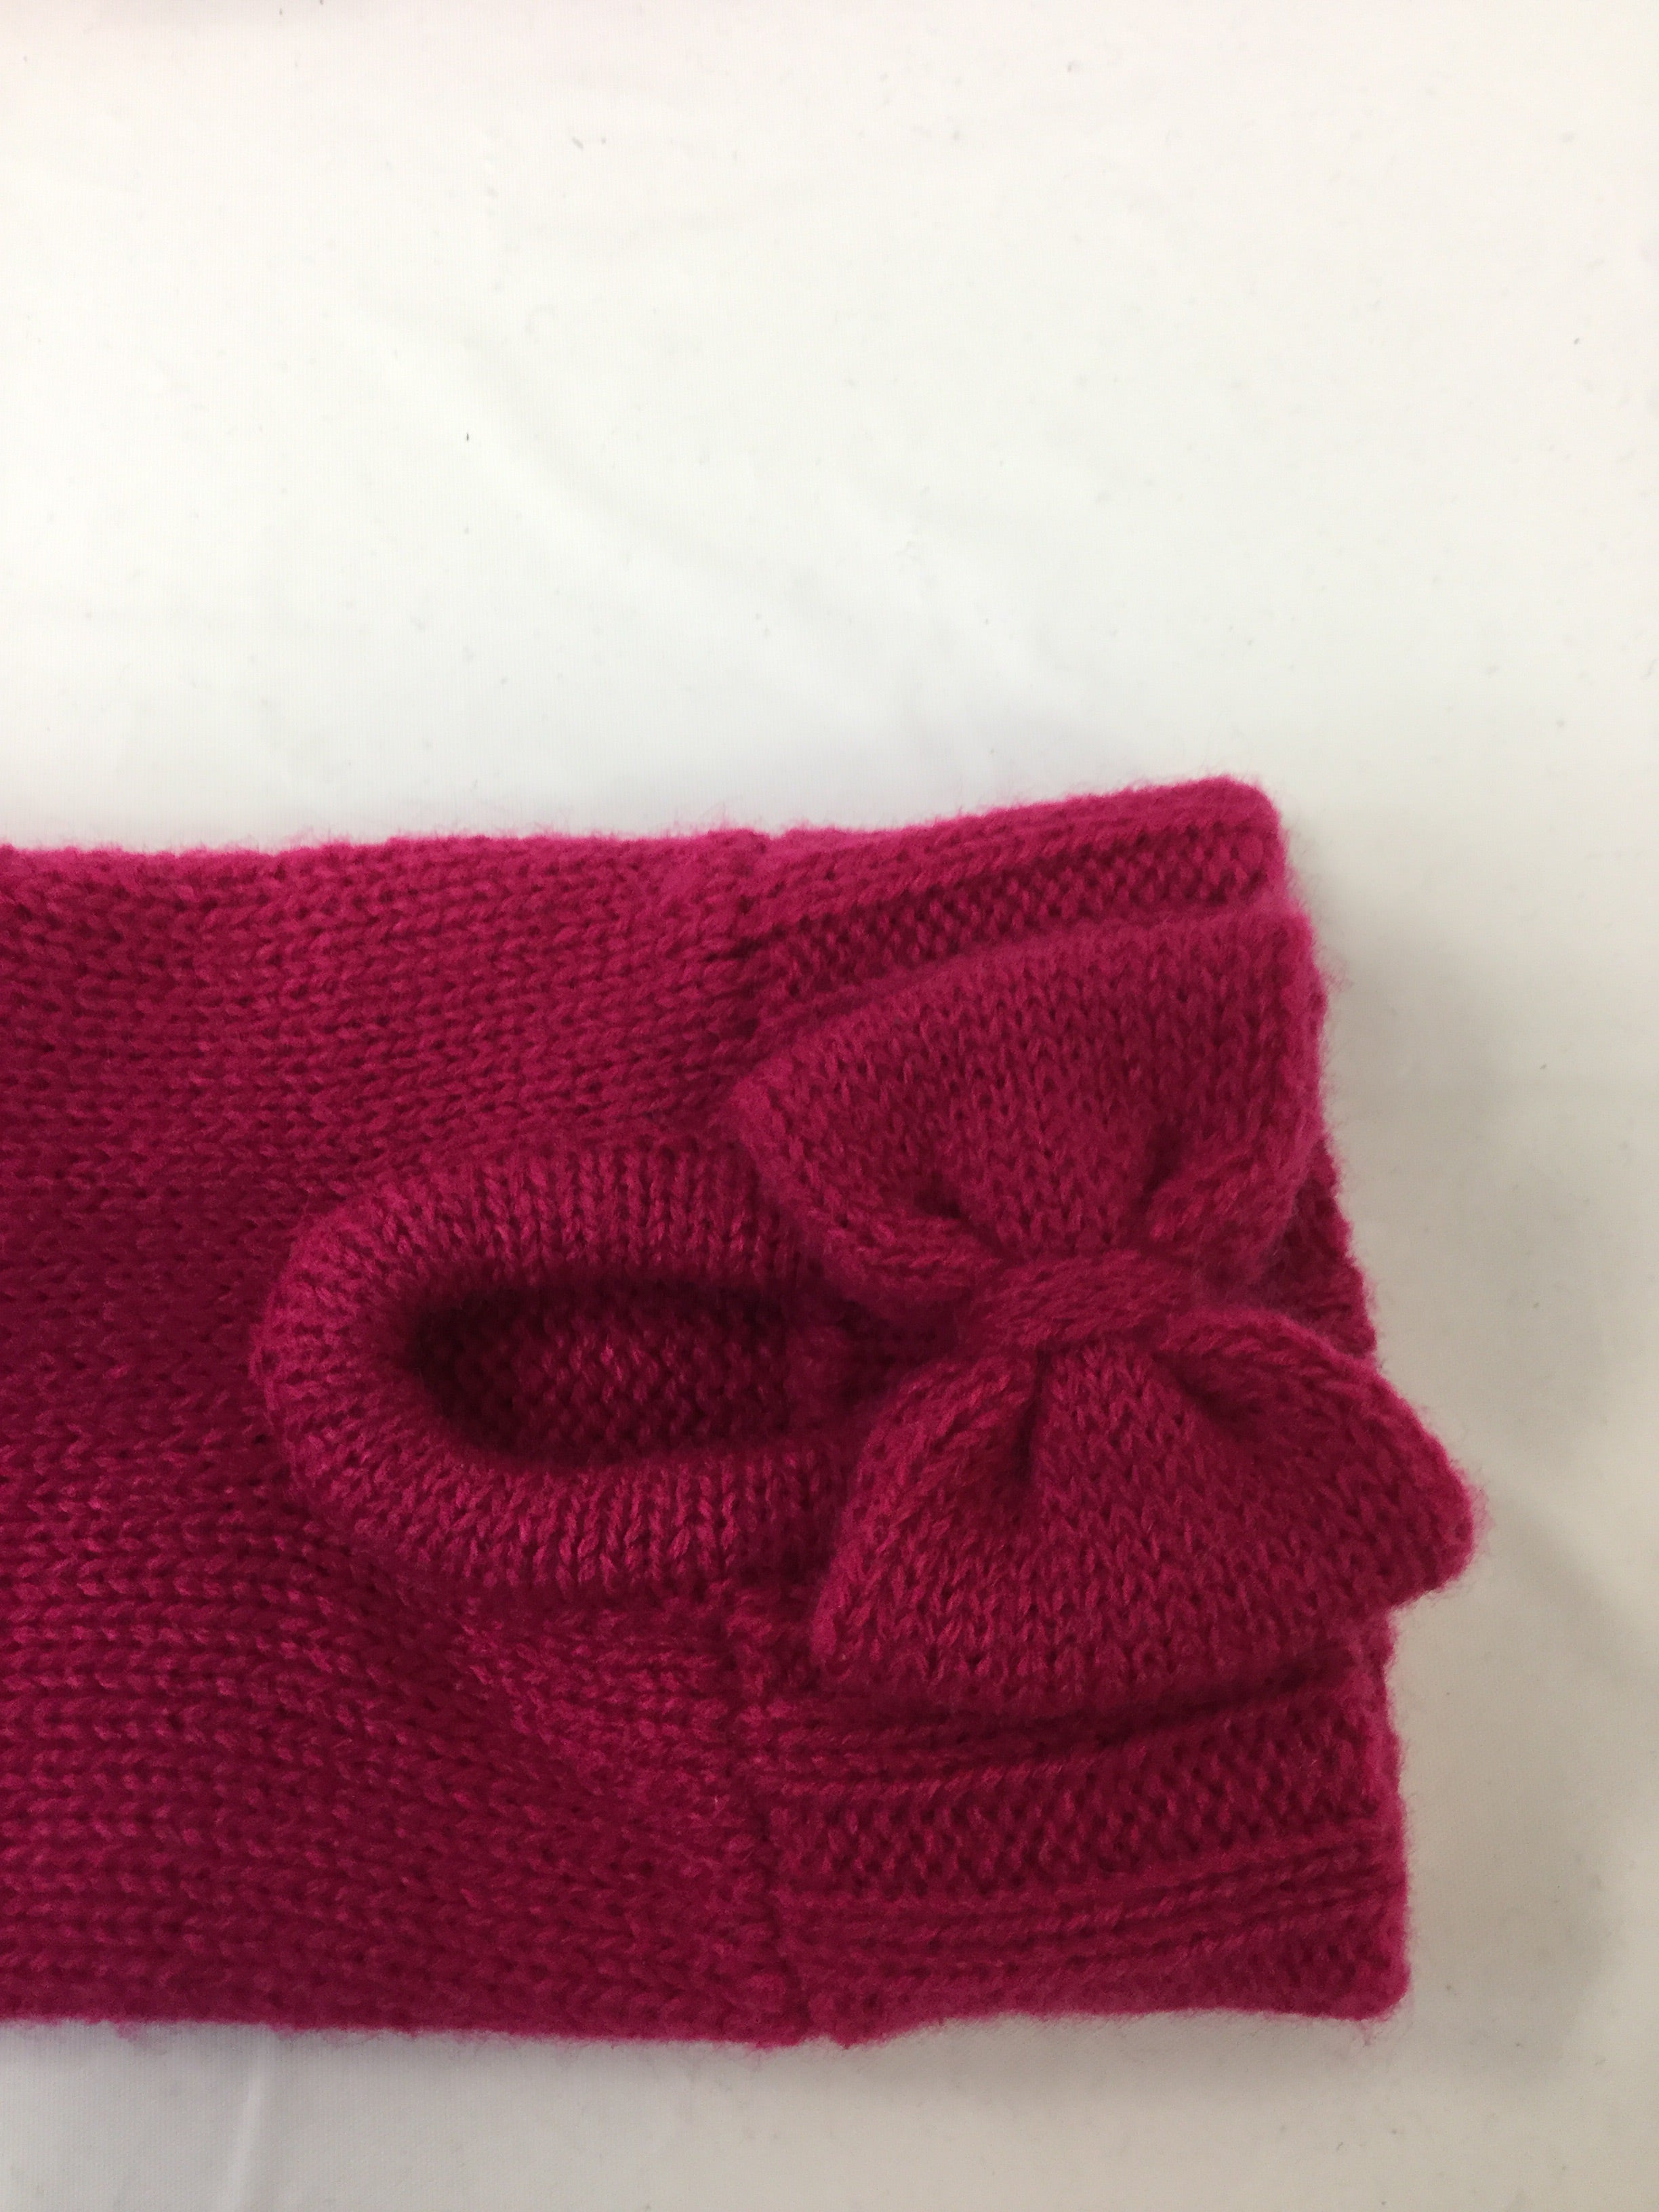 Photo #2 - BRAND: KATE SPADE <BR>STYLE: HAT <BR>COLOR: HOT PINK <BR>OTHER INFO: WITH GLOVES <BR>SKU: 155-15545-200349<BR>BOW TRIM FEATURE ON HAT AND GLOVES<BR>GREY TIP TRIM ON GLOVES<BR>EXCELLENT CONDITION <BR>